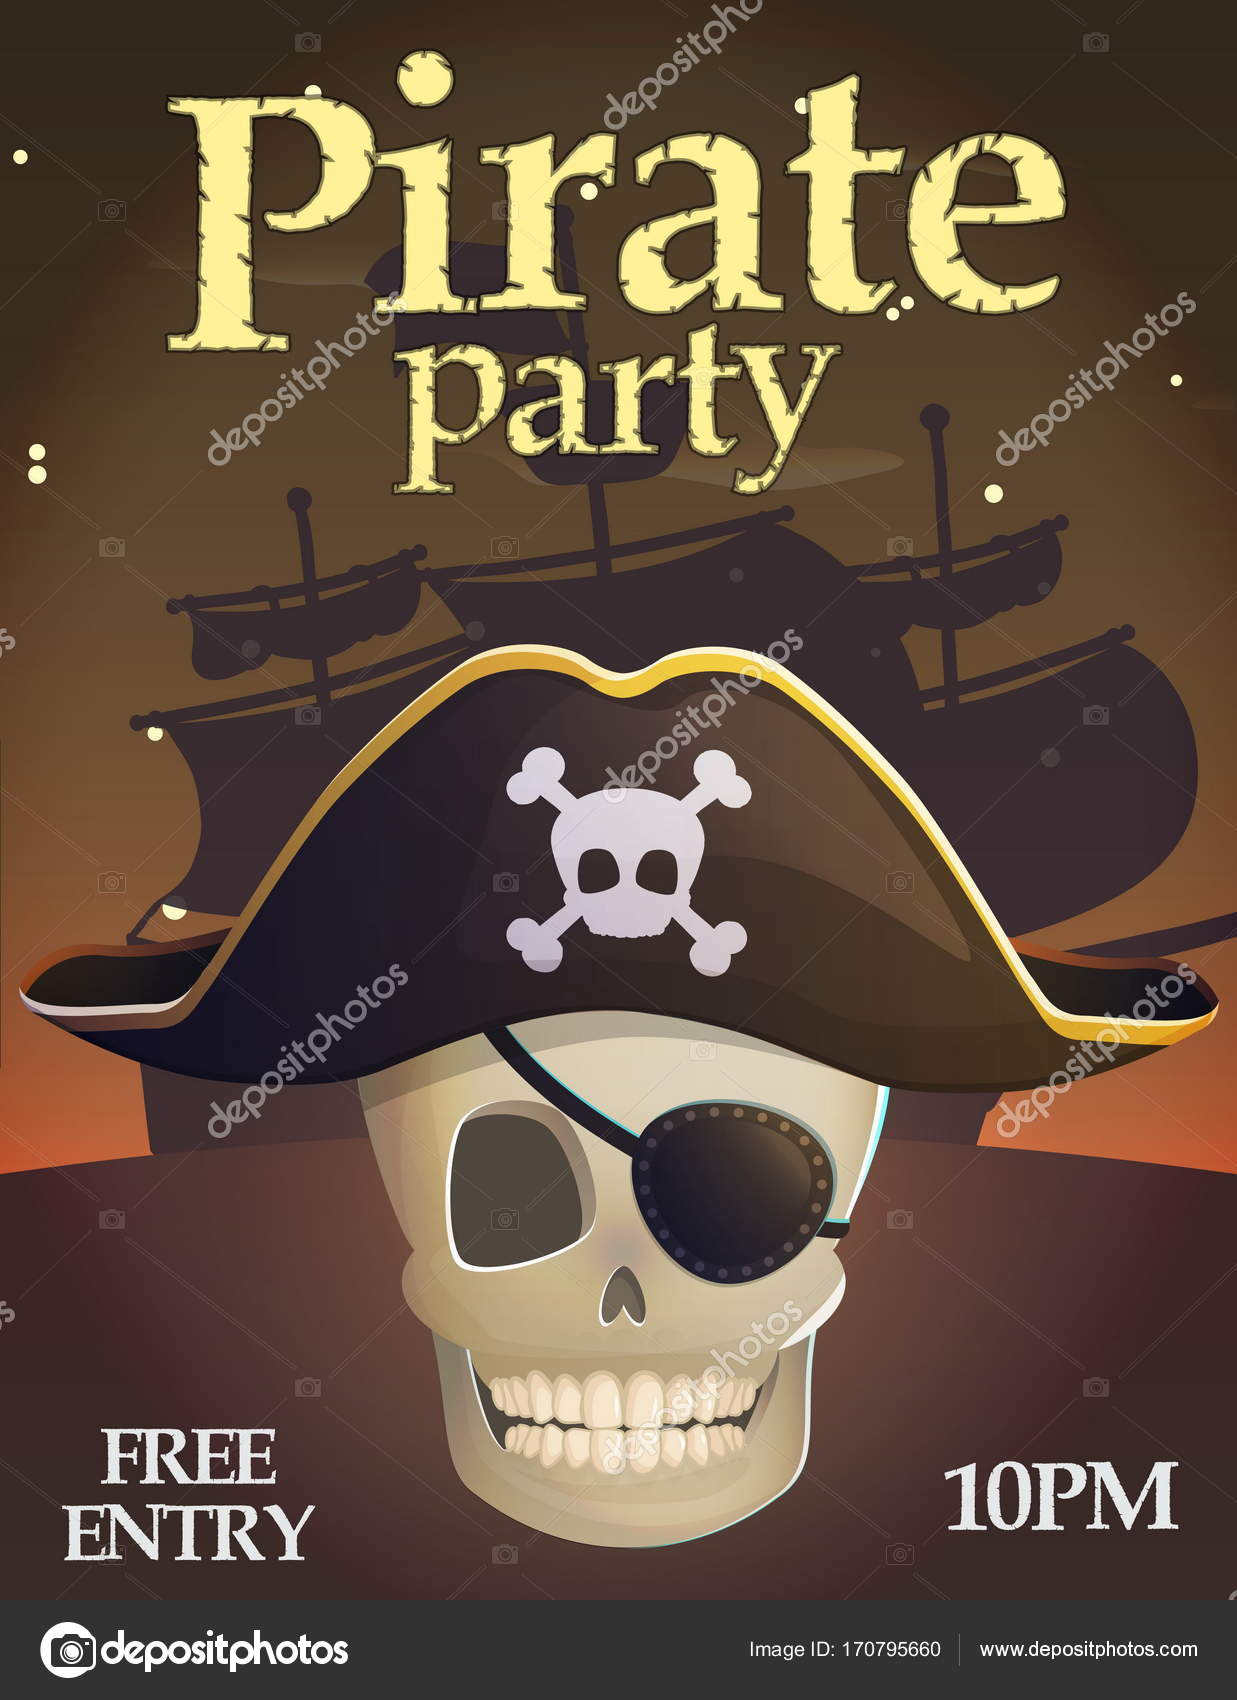 Pirate Party Einladung Vorlage U2014 Stockvektor